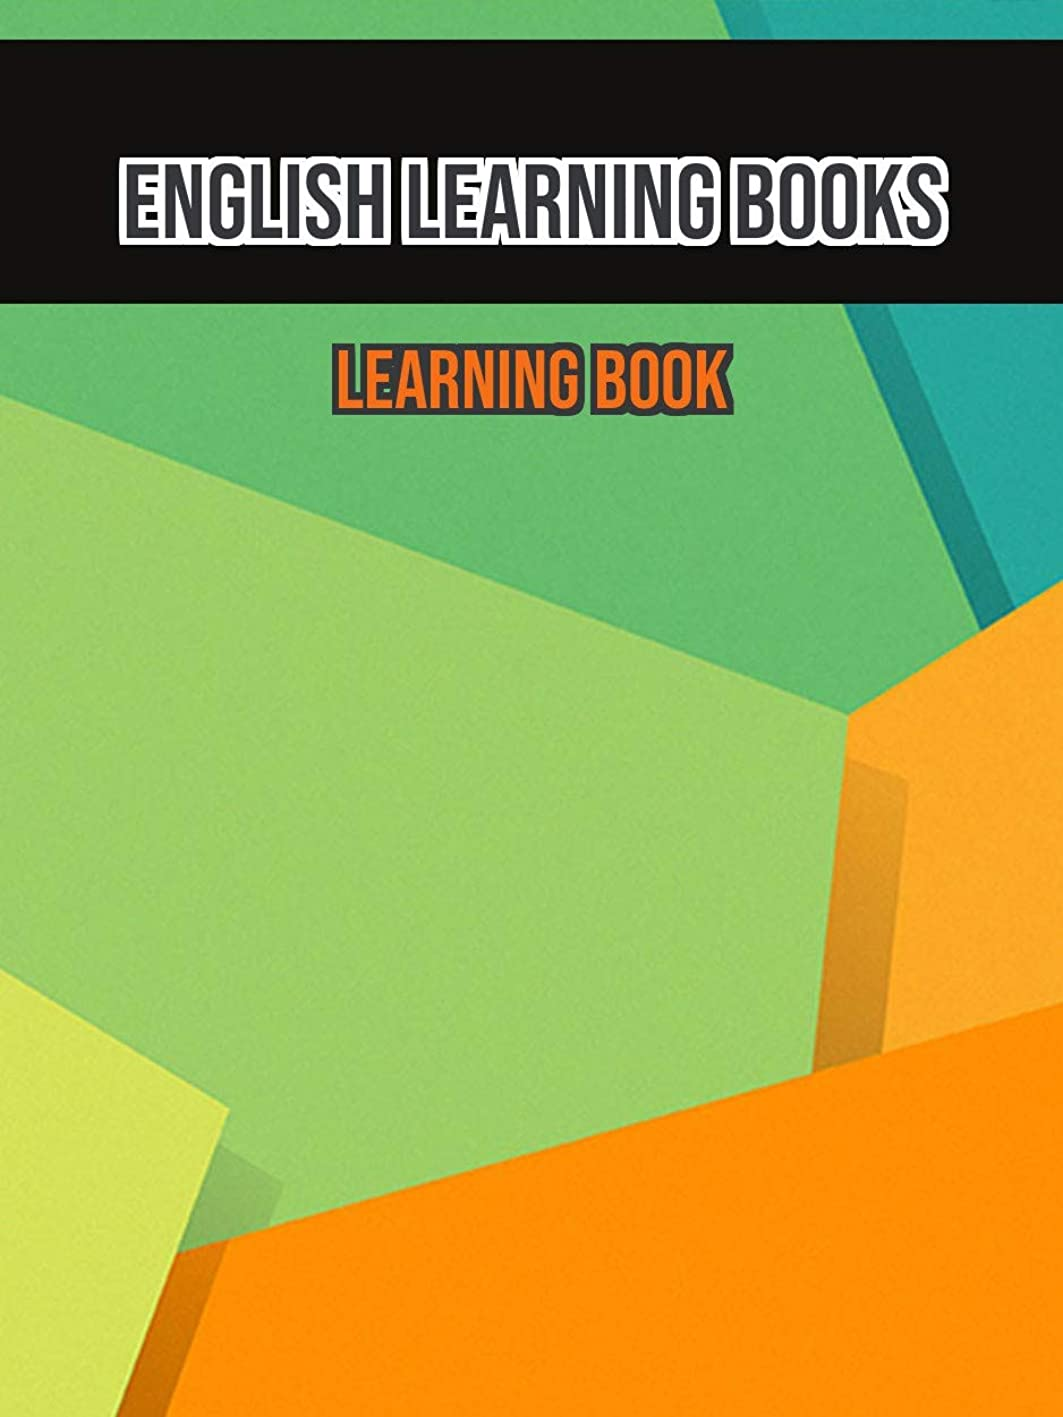 抵抗力があるコーンクスクスEnglish Learning BooksLEARNING BOOK (English Edition)